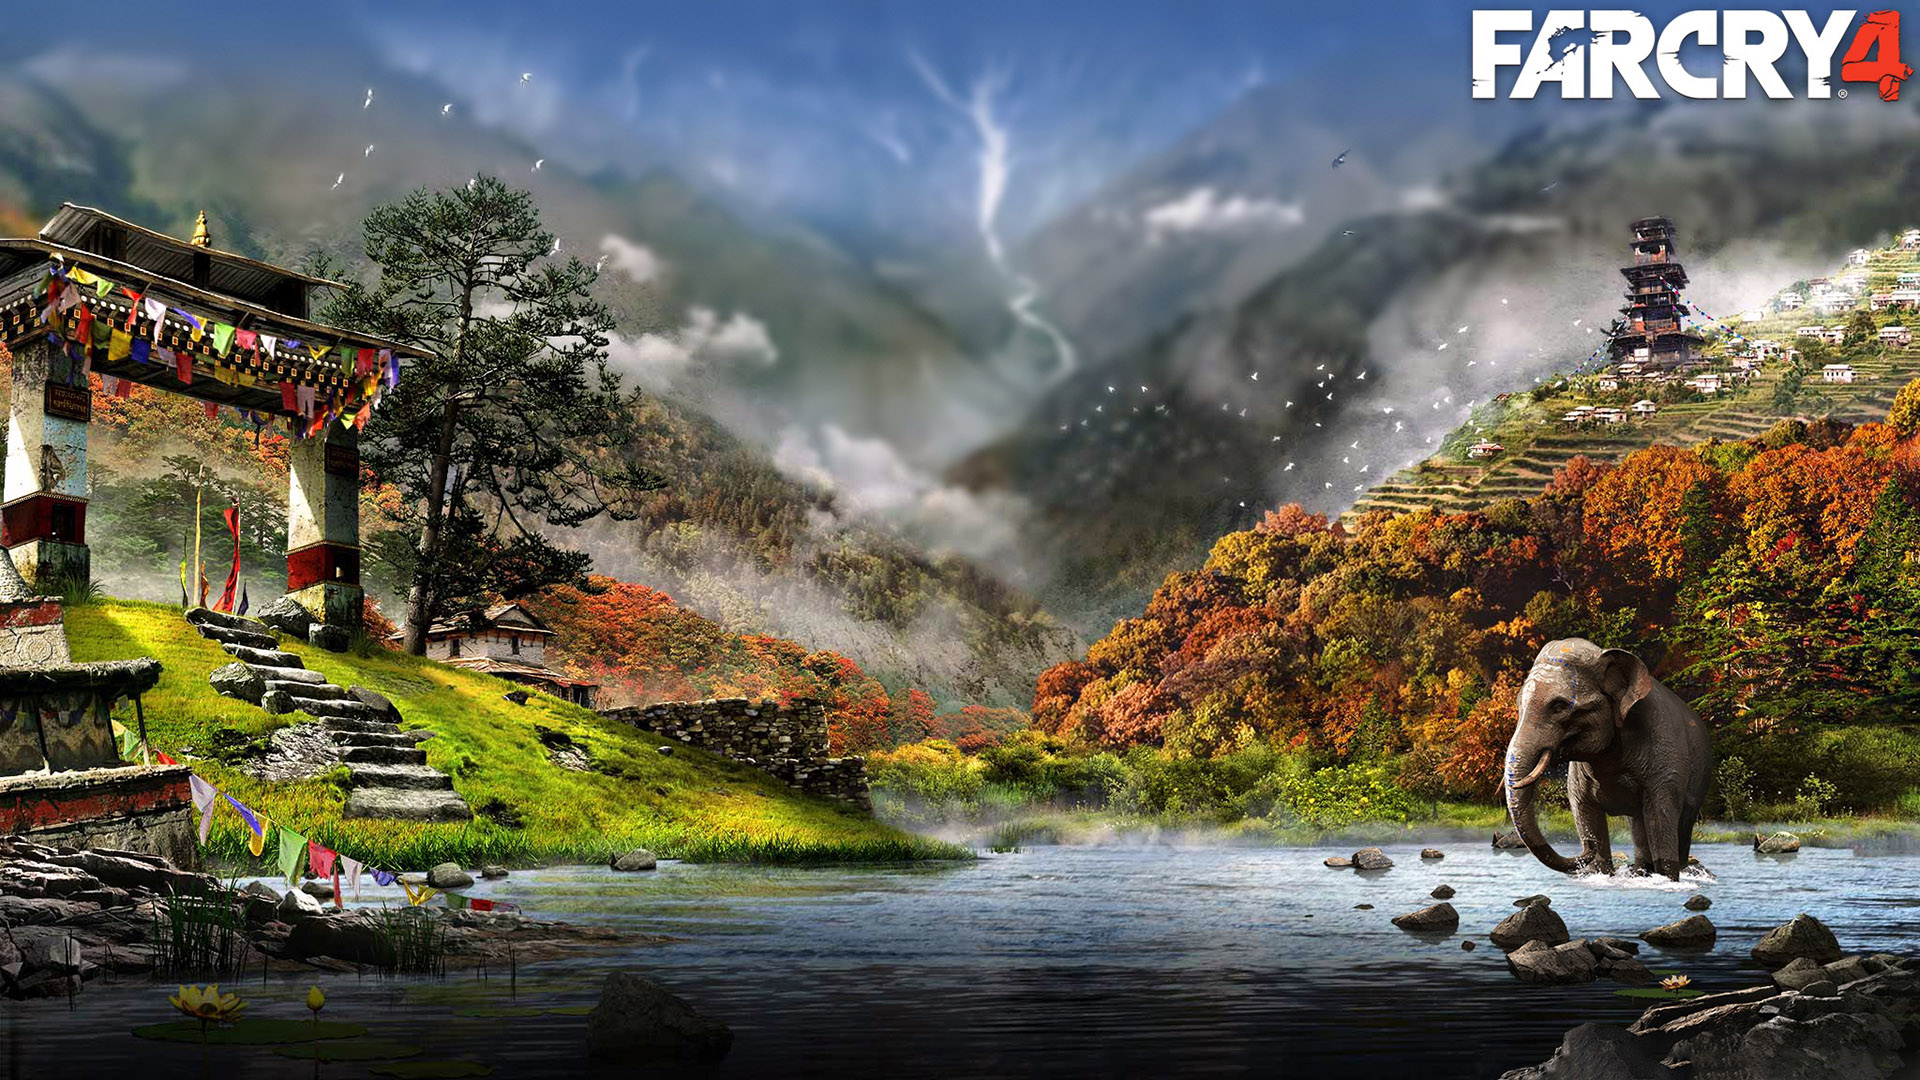 Free Download Far Cry 4 Game Landscape Hd Wallpaper 1920x1080